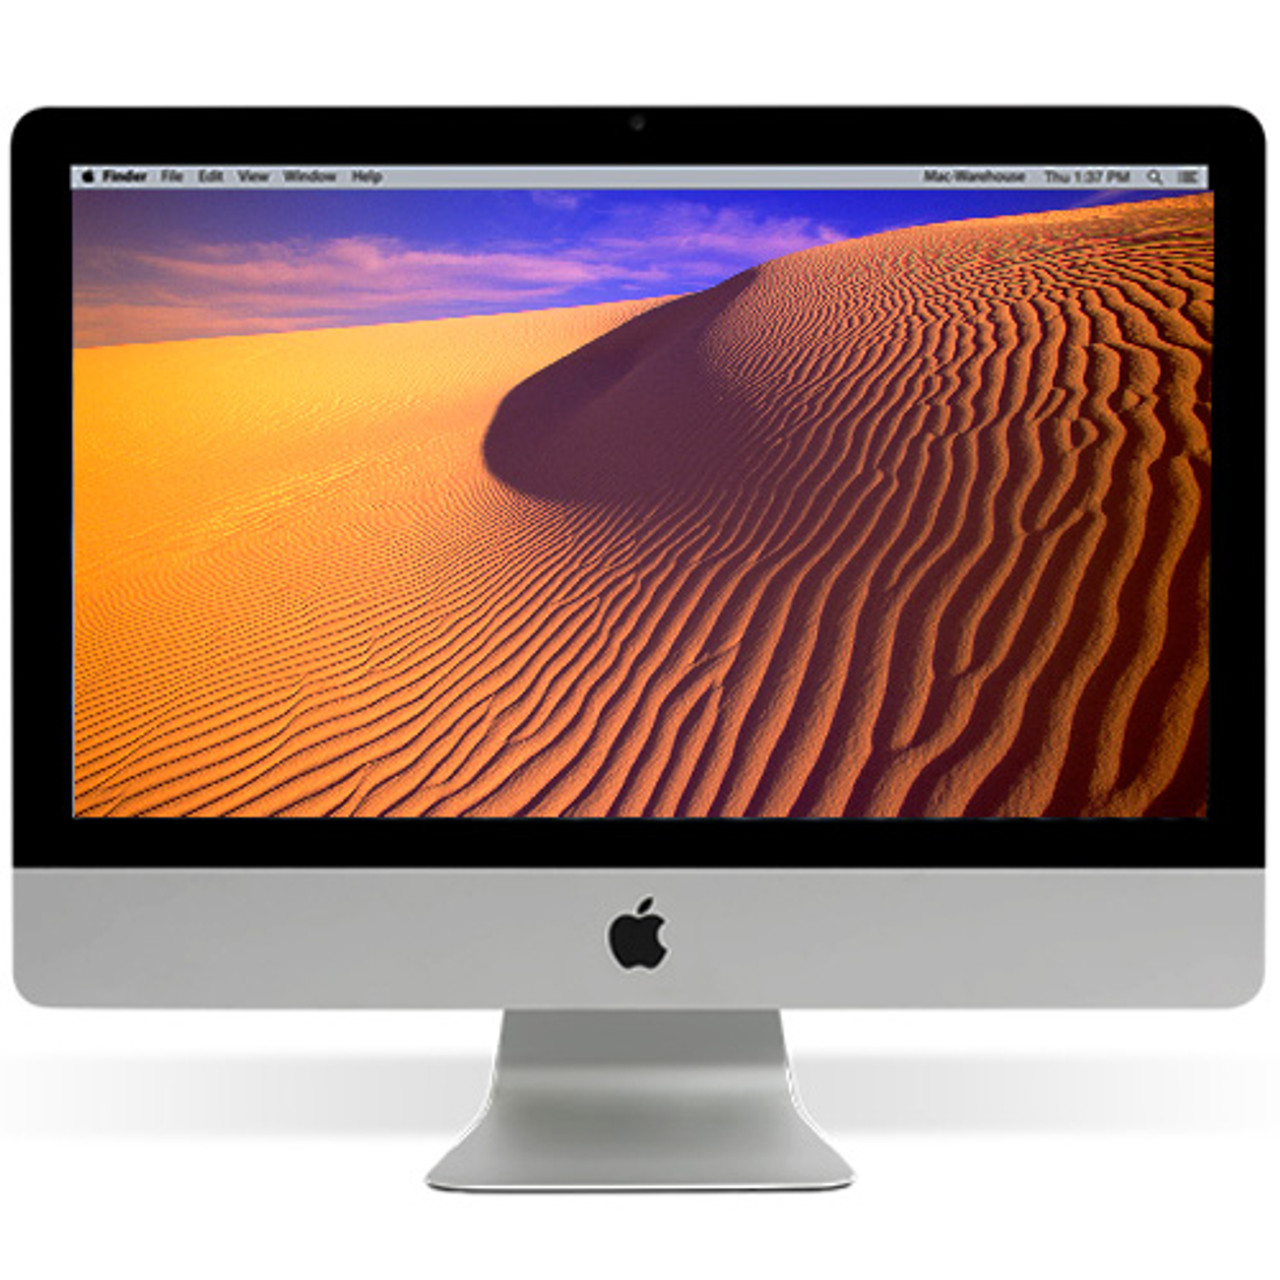 Apple Imac 21 5 All In One Computer Core 2 Duo 3 06ghz 4gb 500gb